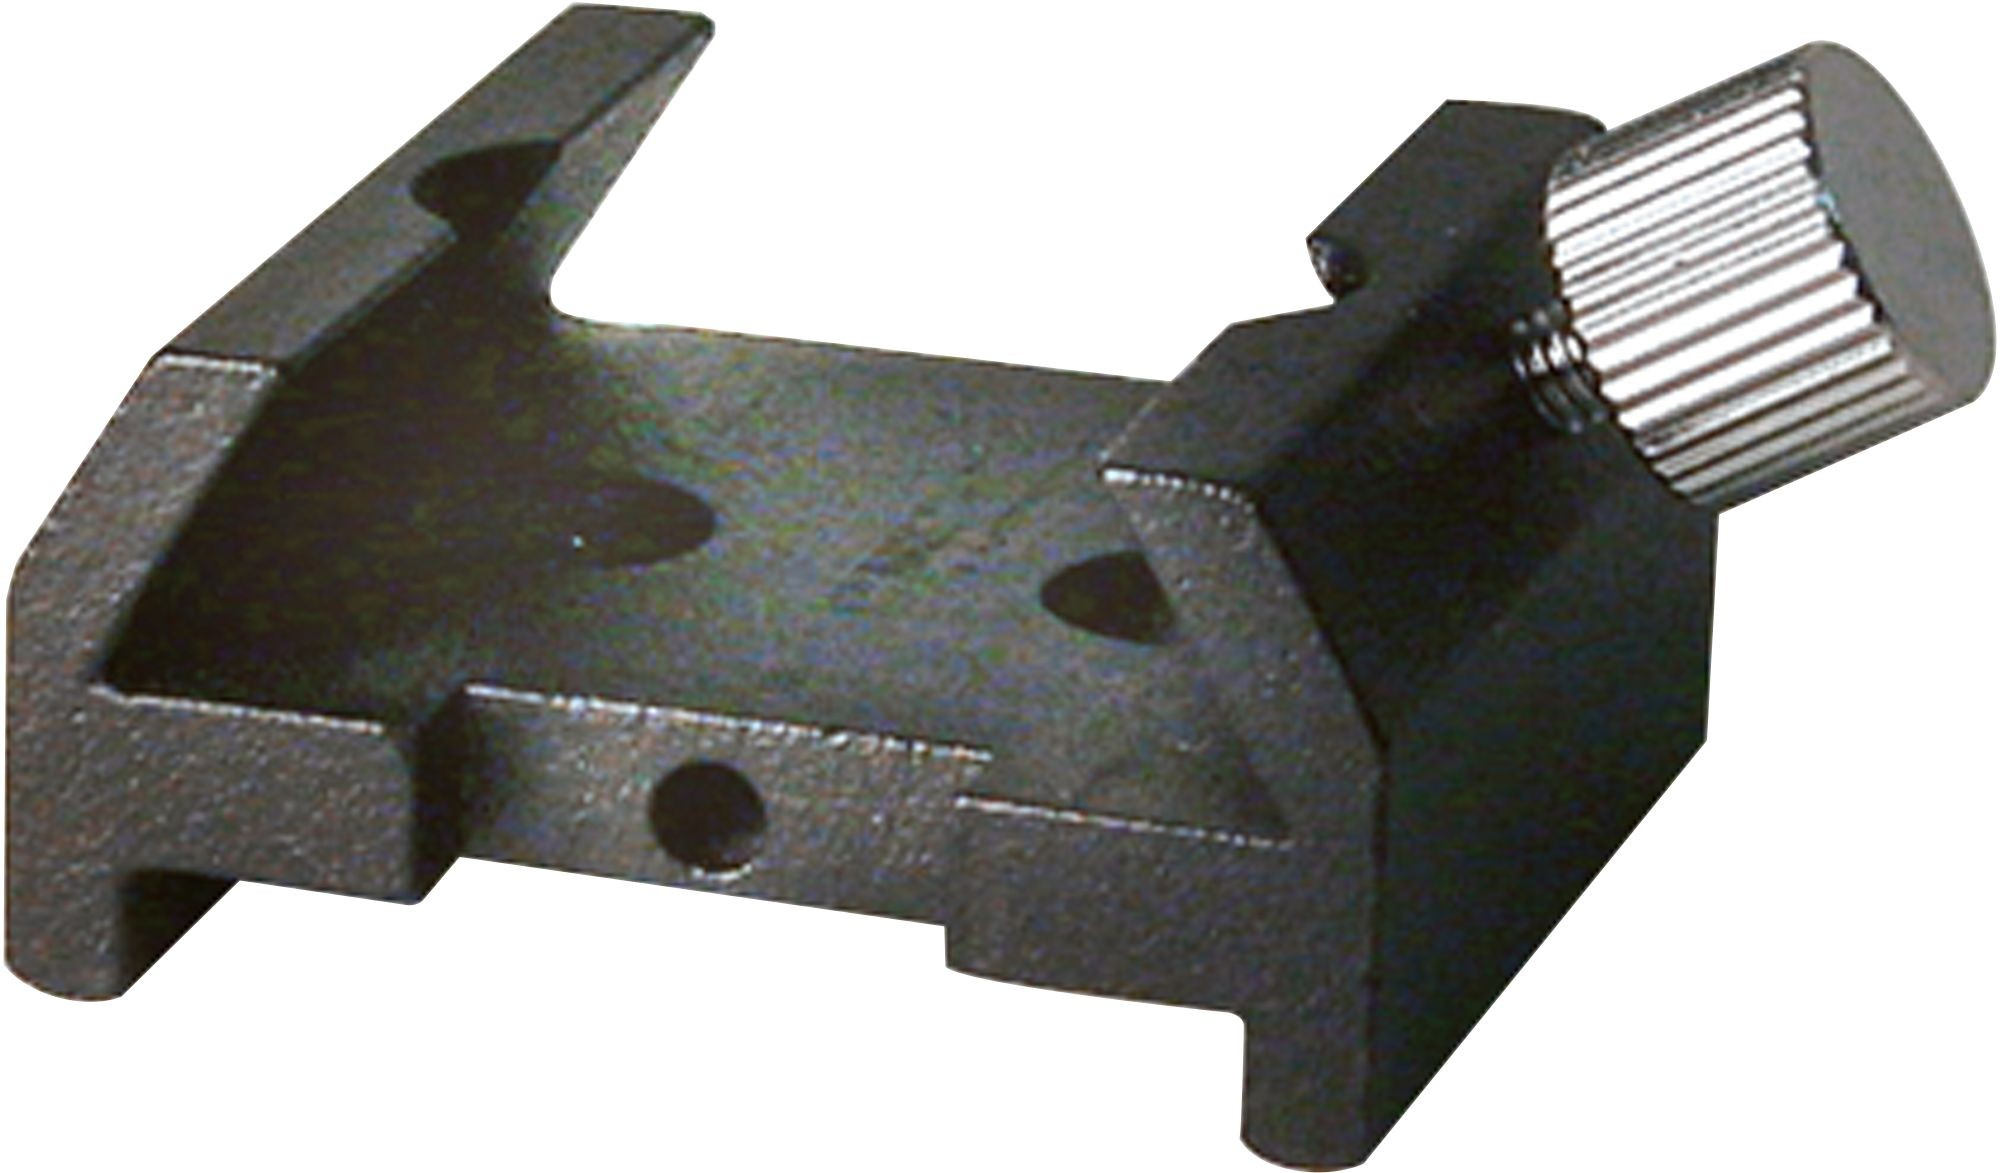 Orion Dovetail Base For Finder Scope